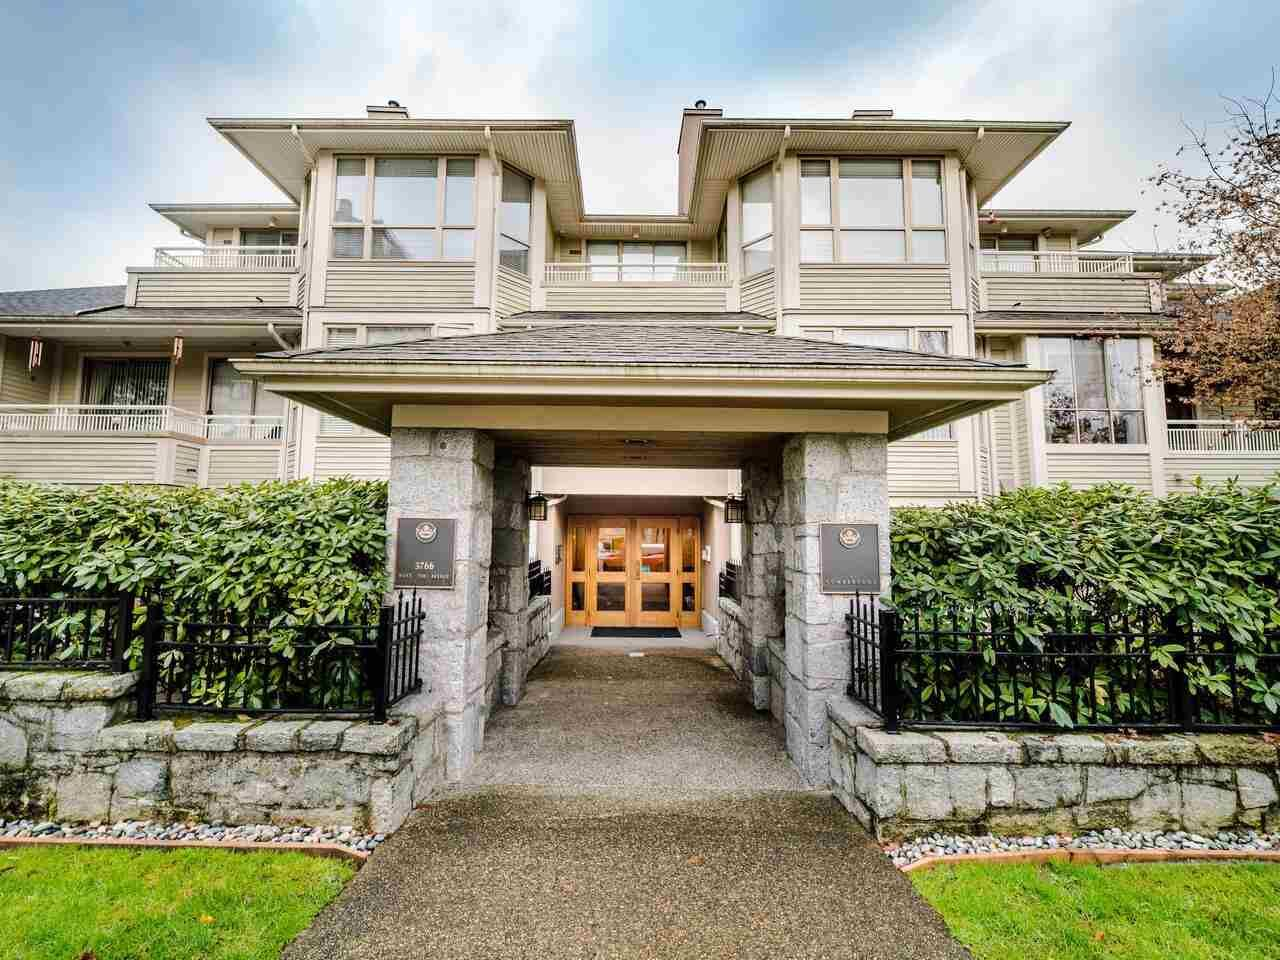 """Main Photo: 305 3766 W 7TH Avenue in Vancouver: Point Grey Condo for sale in """"THE CUMBERLAND"""" (Vancouver West)  : MLS®# R2583728"""